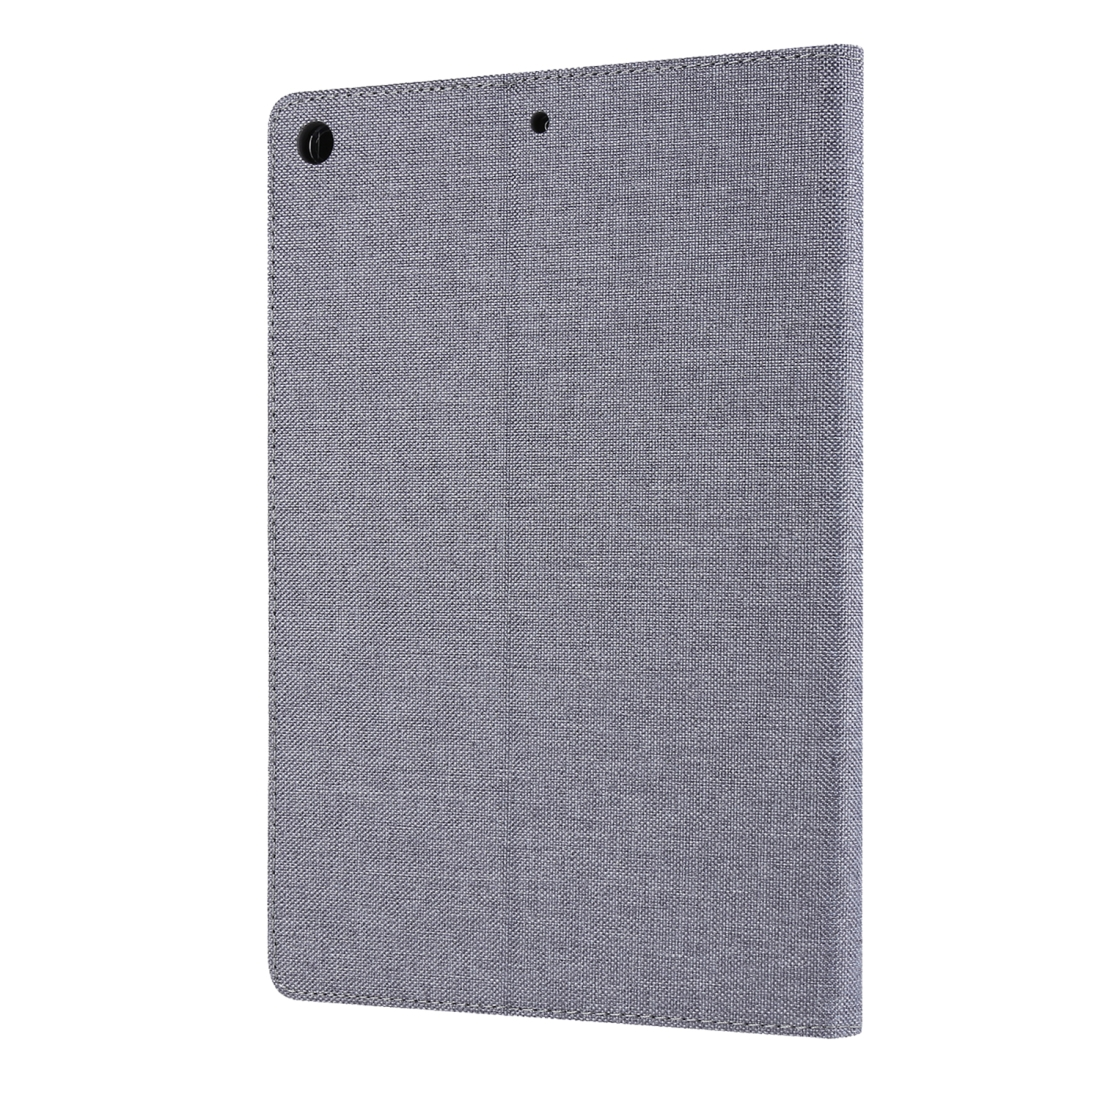 iPad 7th Generation Case (10.2 Inch) With A Durable Protective Fabric Design And Slim Profile (Gray)